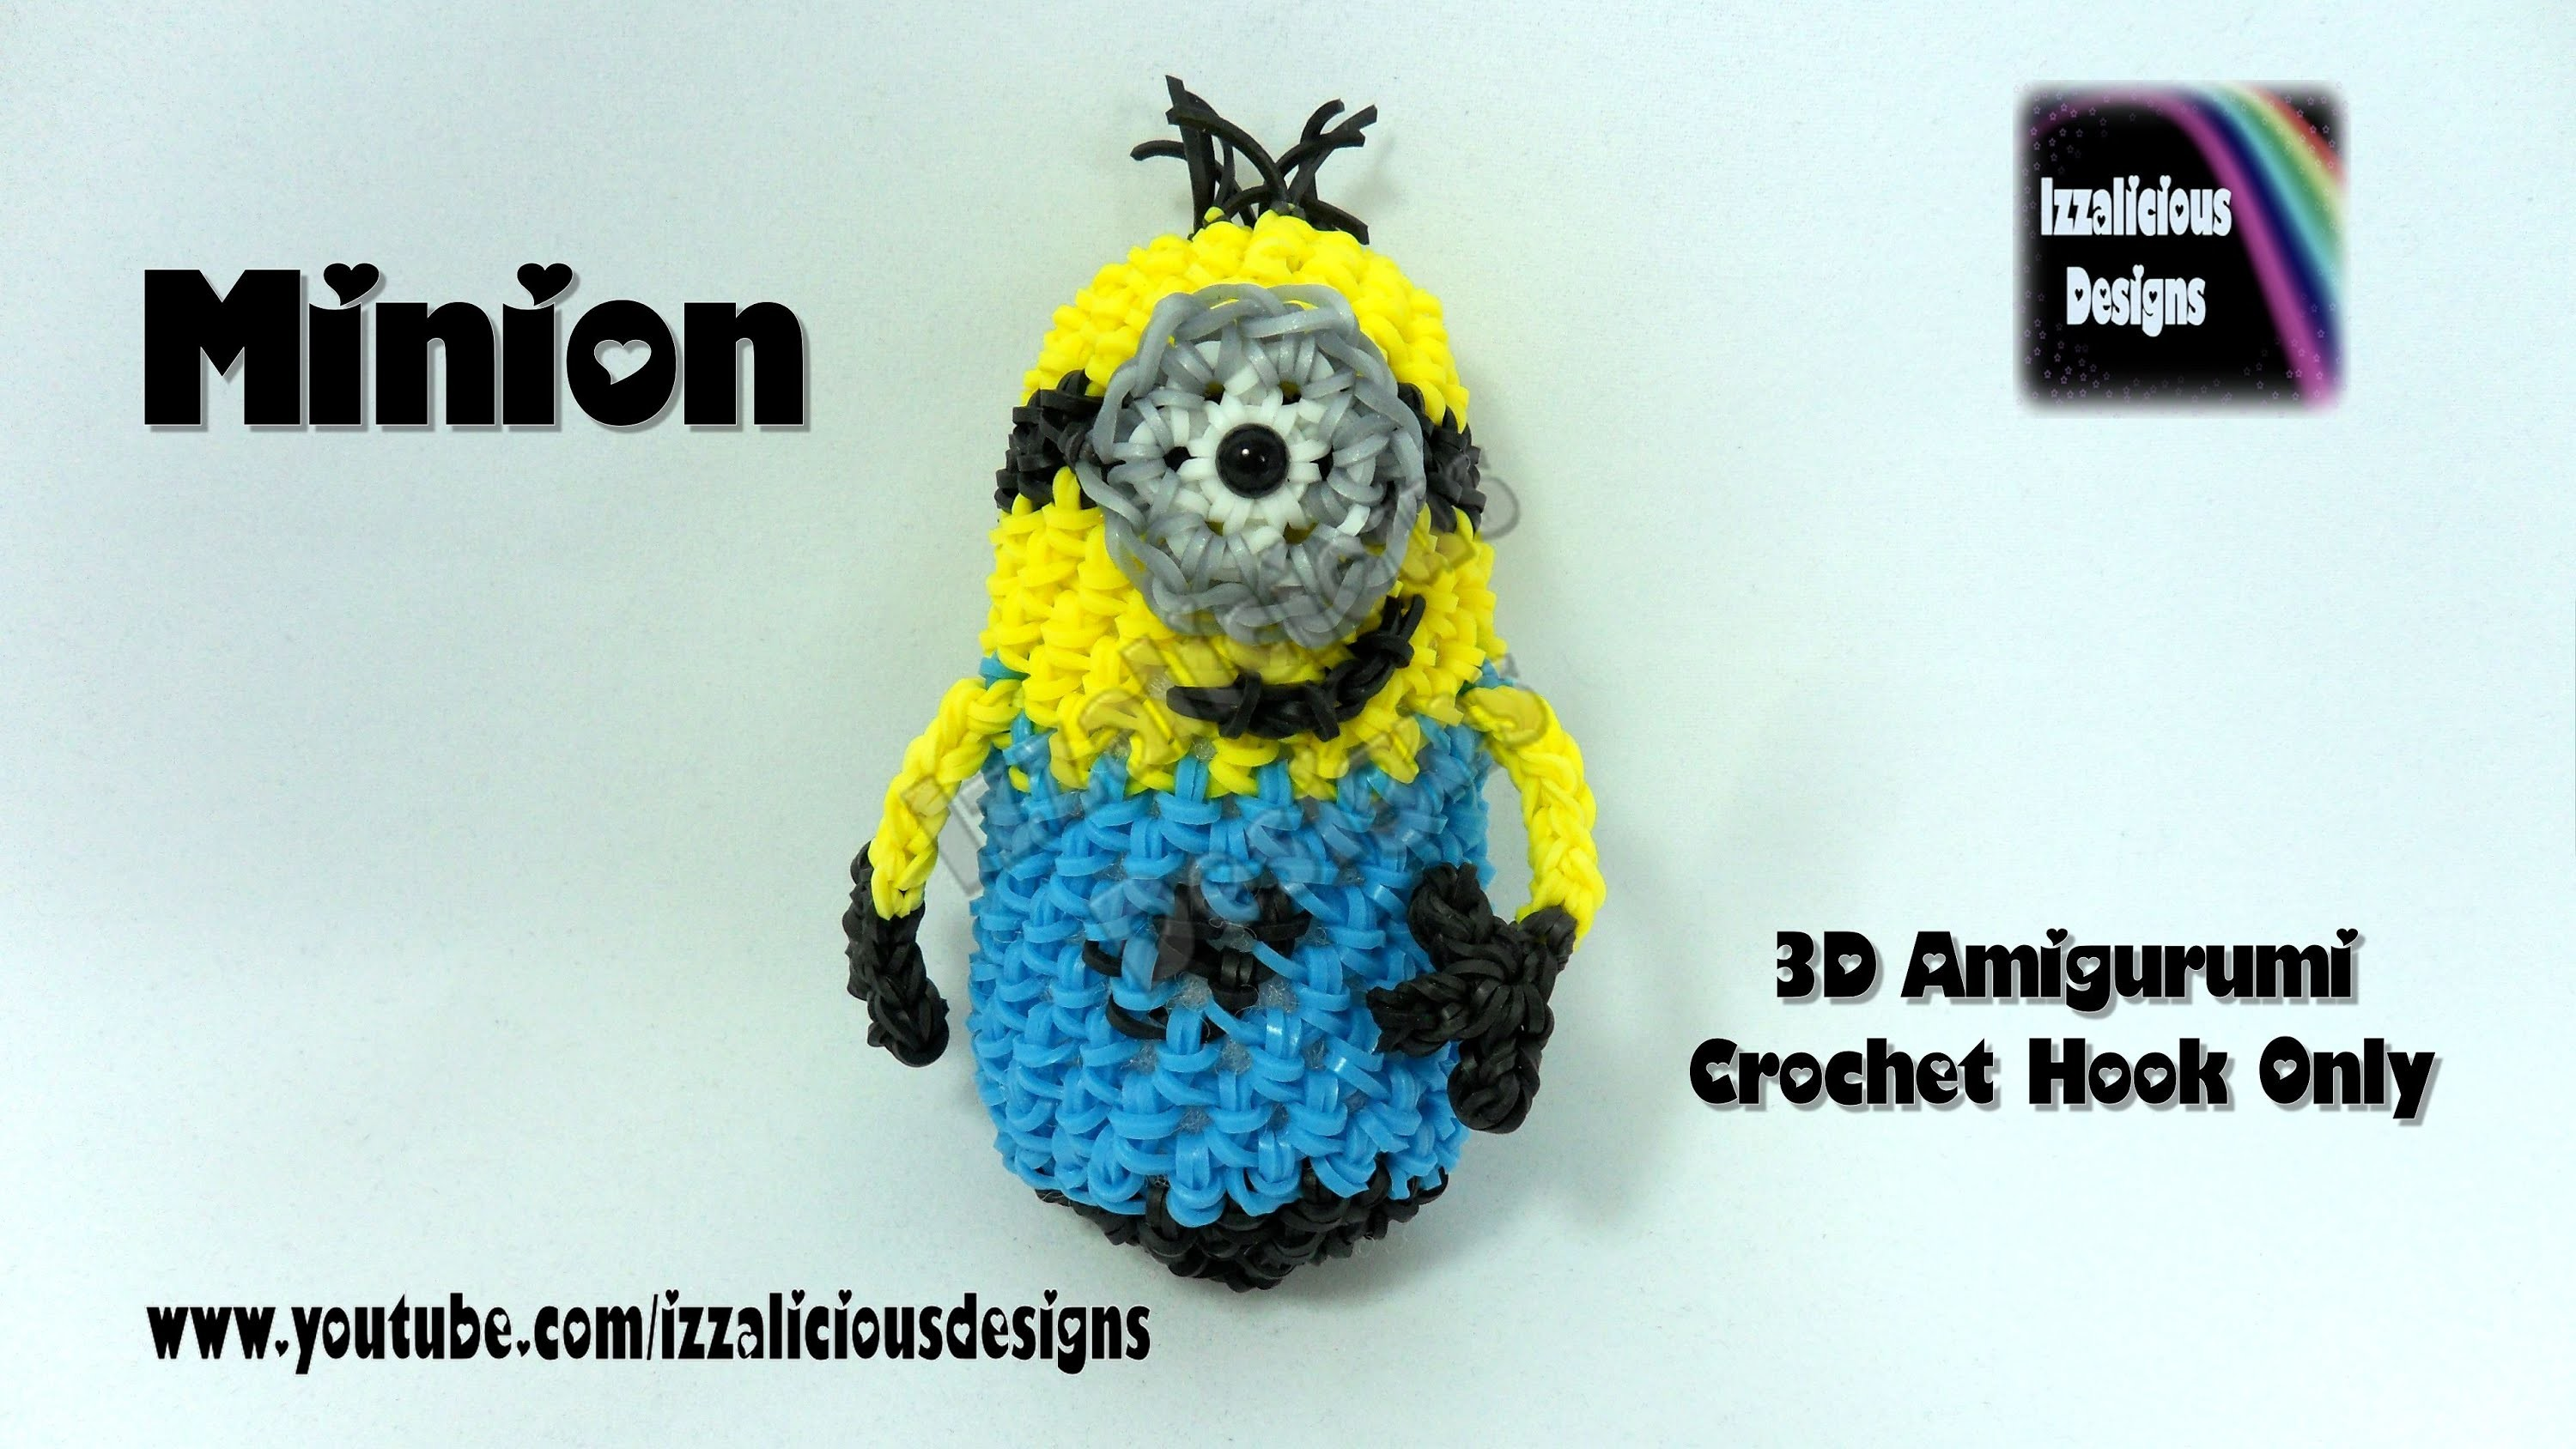 Rainbow Loom 3D Amigurumi Minion Action Figure.Doll.Charm - Loom-less.Hook Only.Crochet